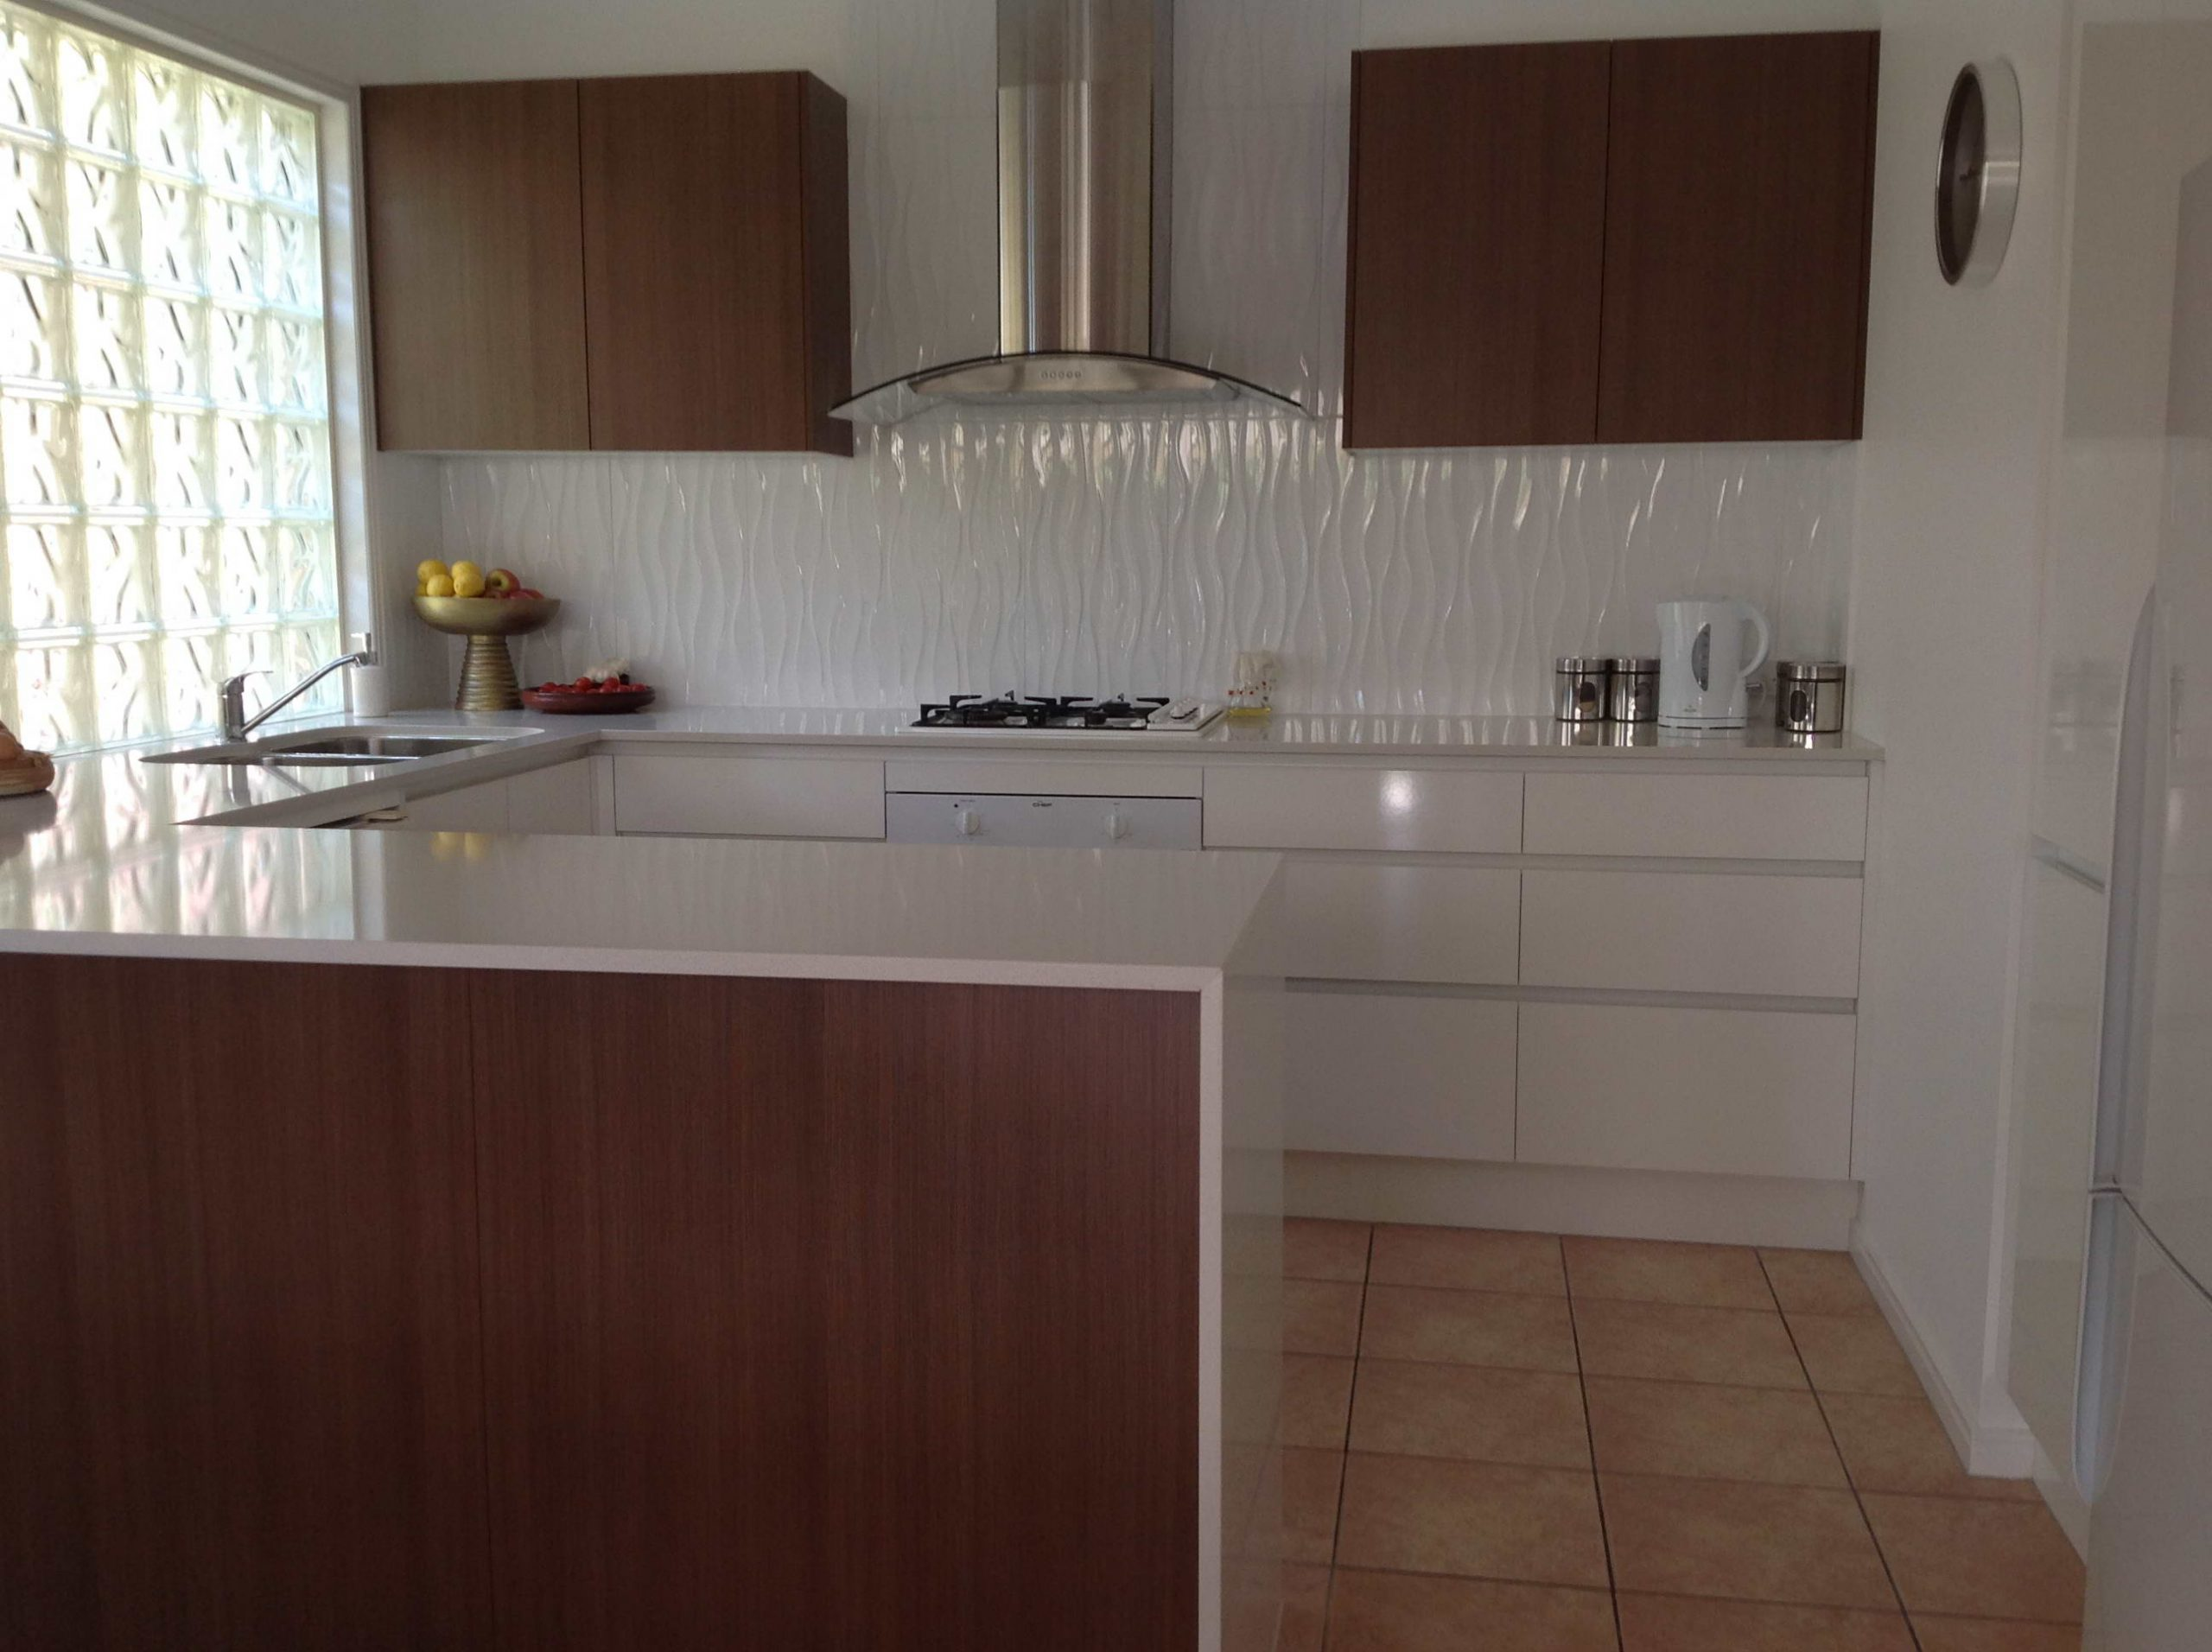 Kitchen Renovations - Gold Coast - Renovation at Burleigh Waters